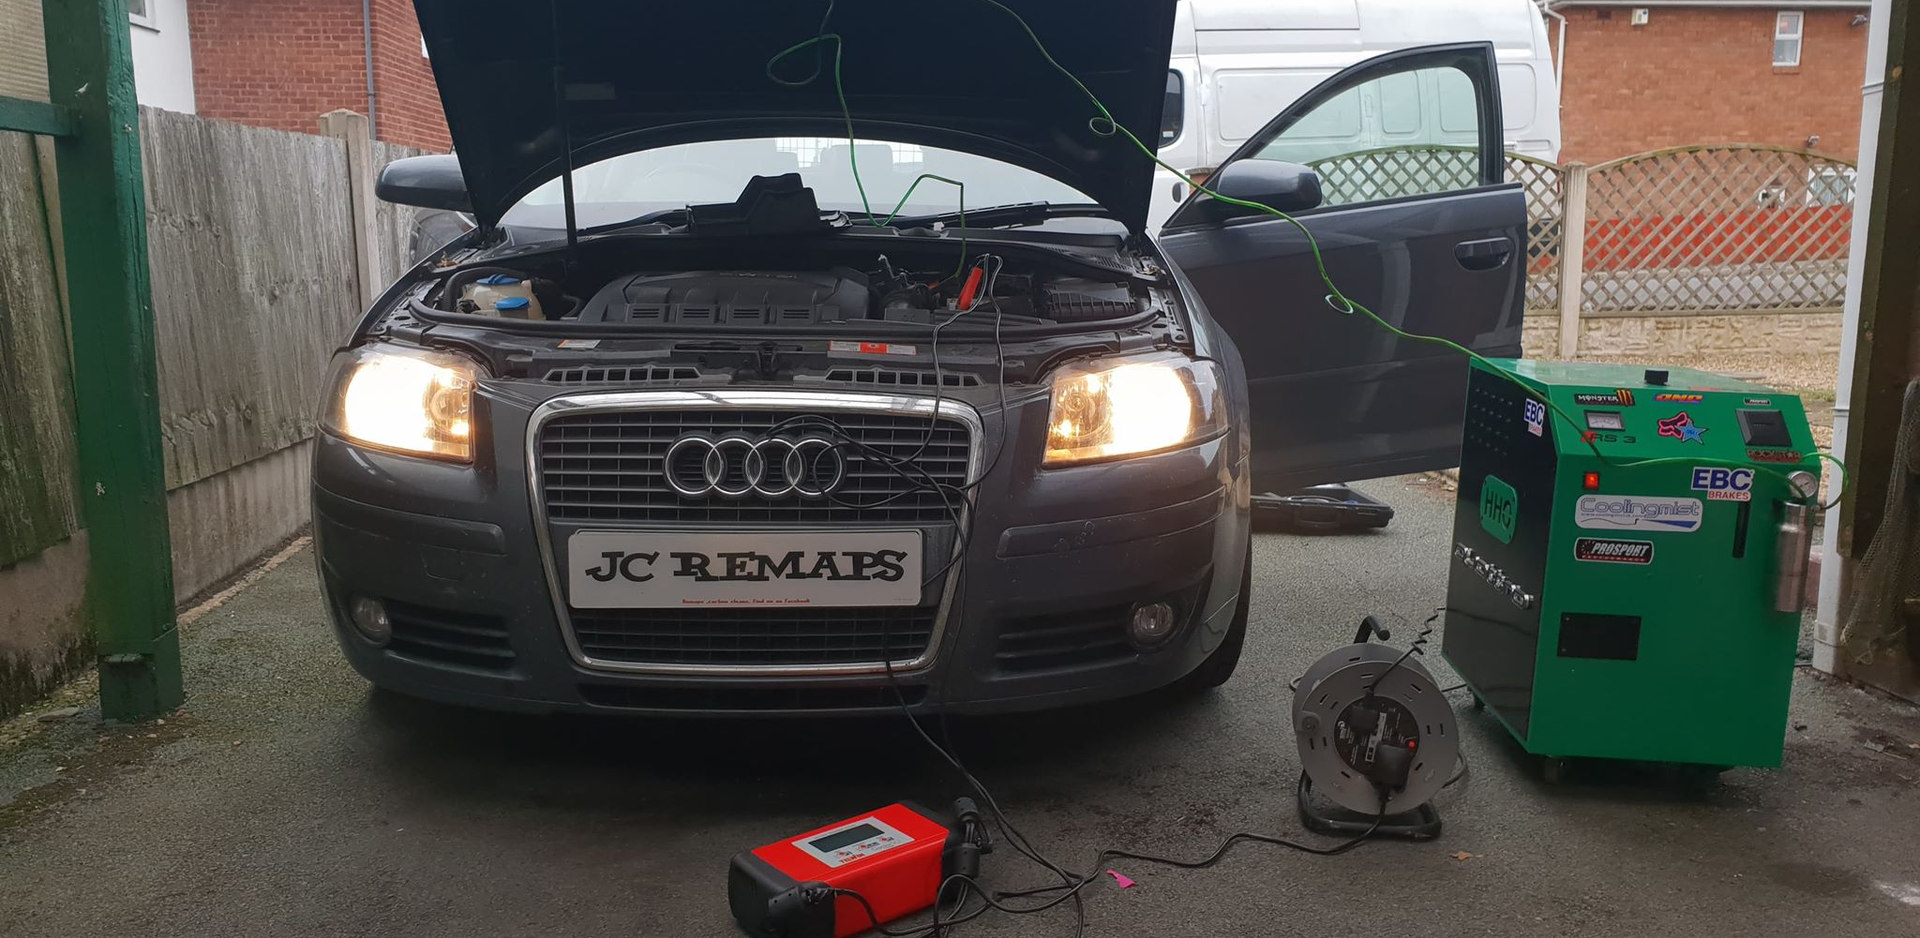 Car - Remap - BHP - Power - Fuel - Carbo